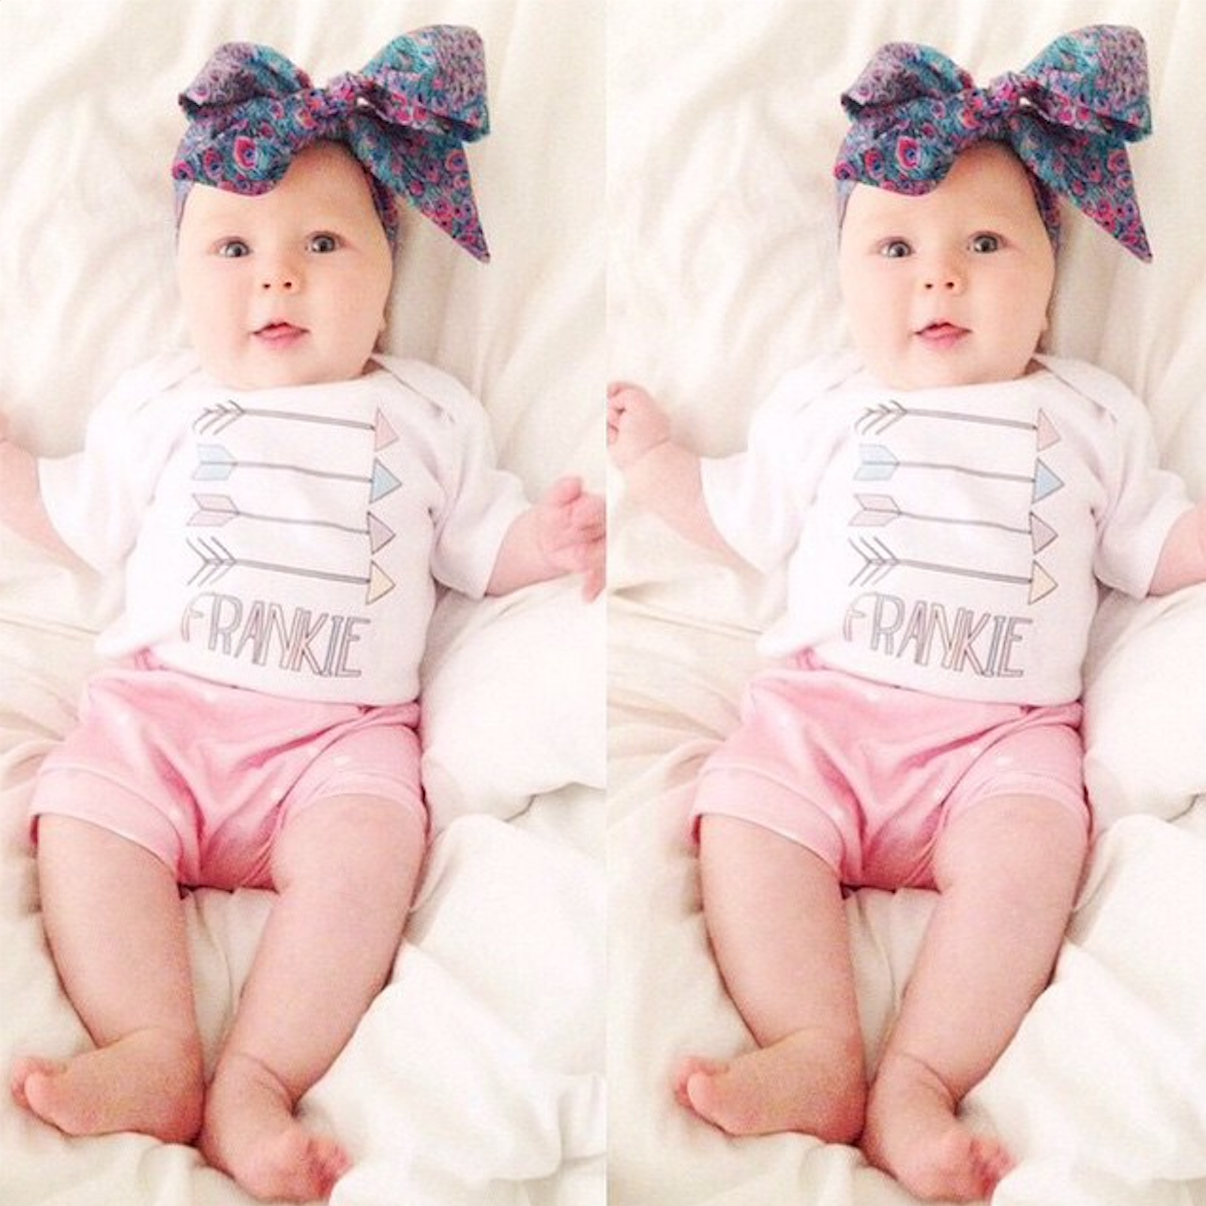 Frankie (from @frankiezara on Instagram) in our Pastel Arrows Baby Onesie